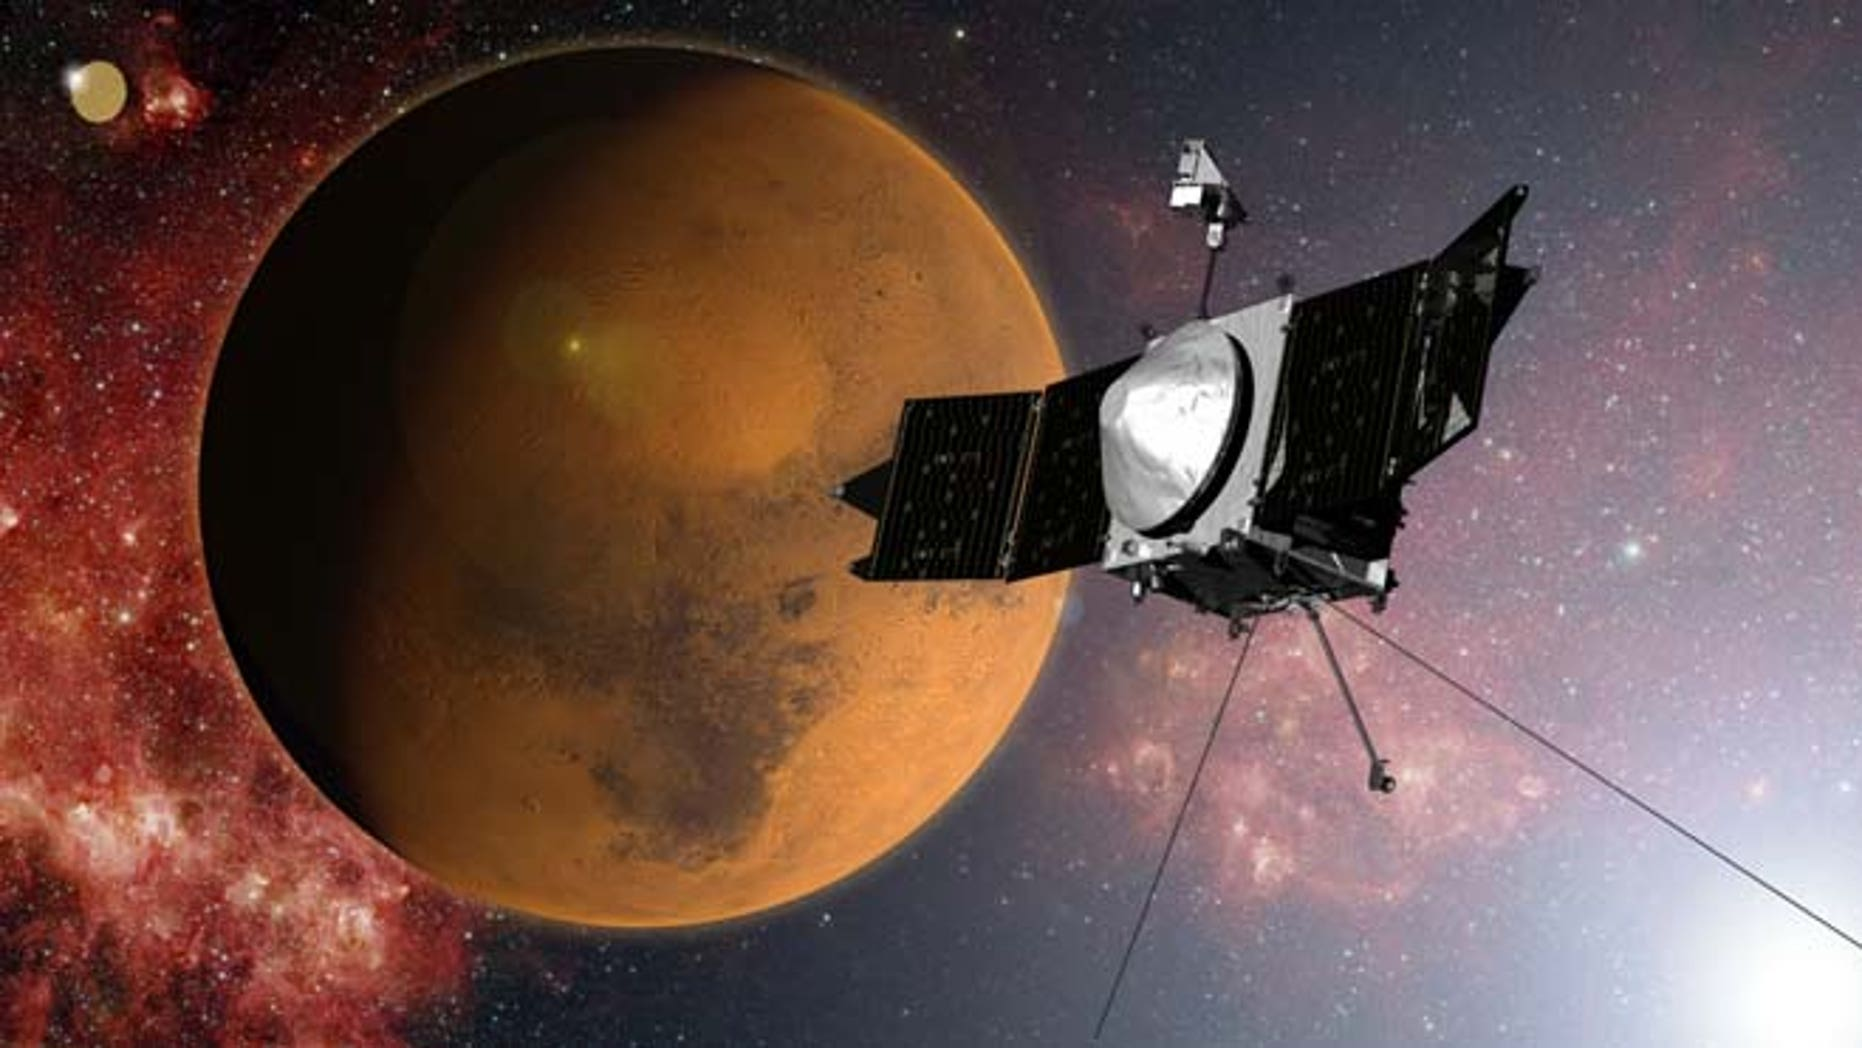 In this artist concept provided by NASA, the MAVEN spacecraft approaches Mars on a mission to study its upper atmosphere. (AP/NASA)